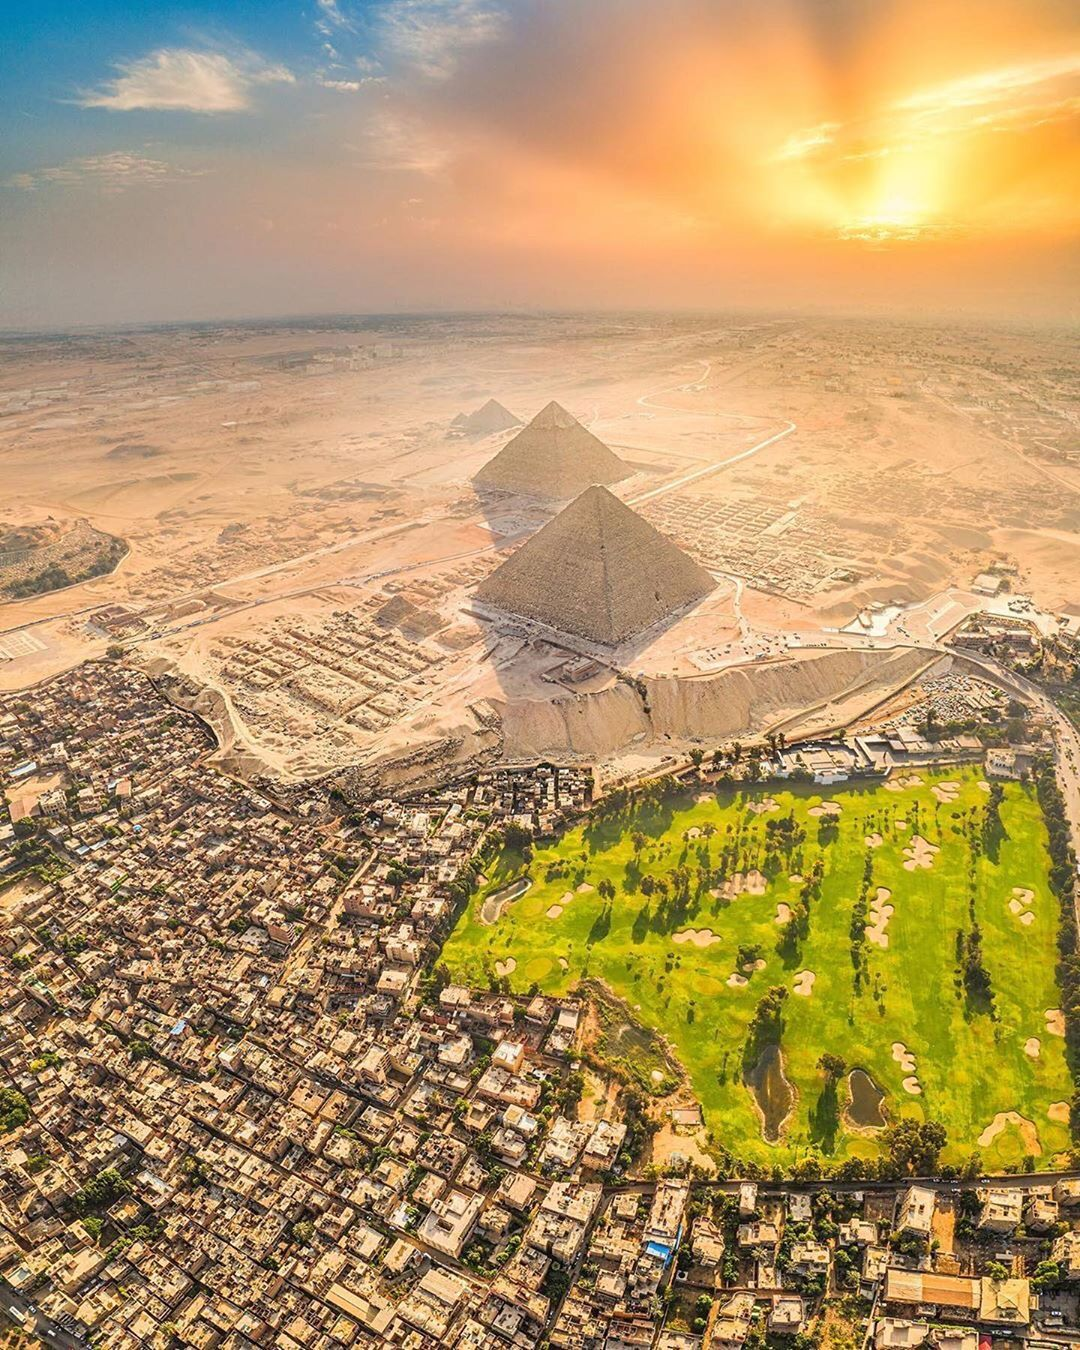 A Different And Unique View Of Cairo Egypt Great Pyramid Of Giza Pyramids Of Giza Egypt